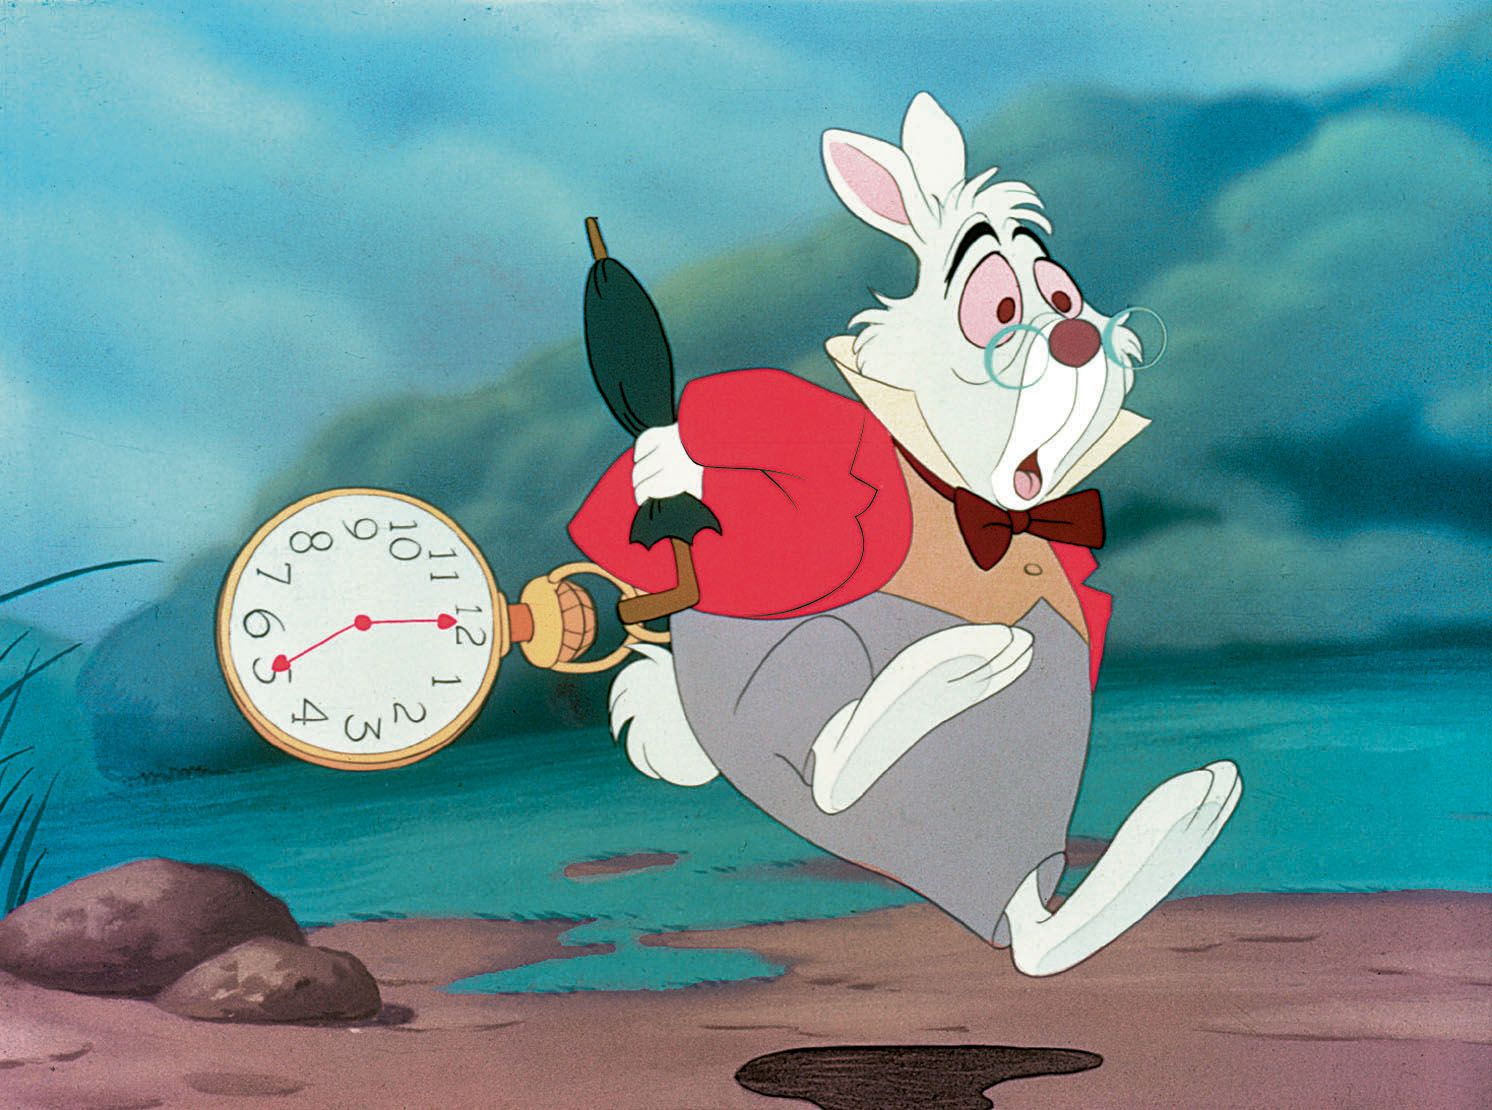 in a hurry | in a hurry | Pinterest | White rabbits